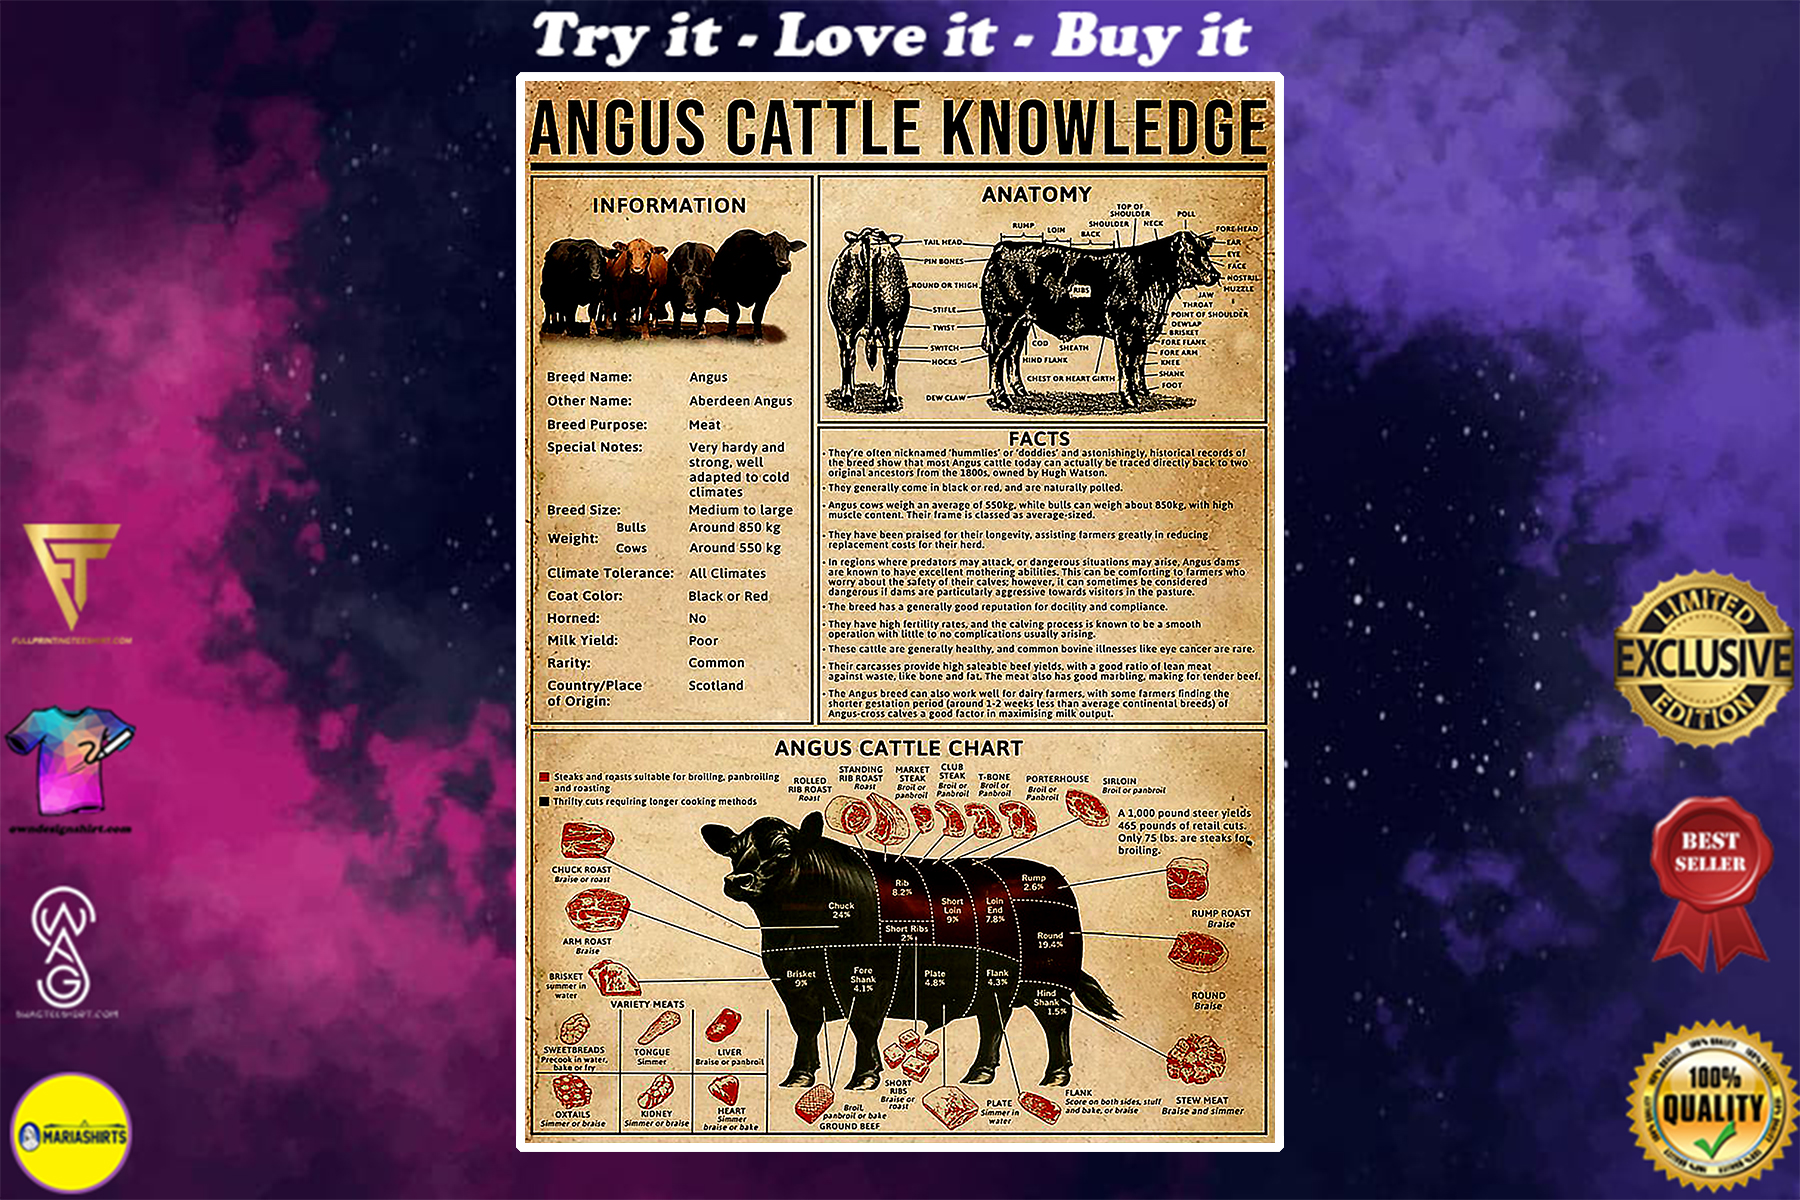 vintage angus cattle knowledge poster